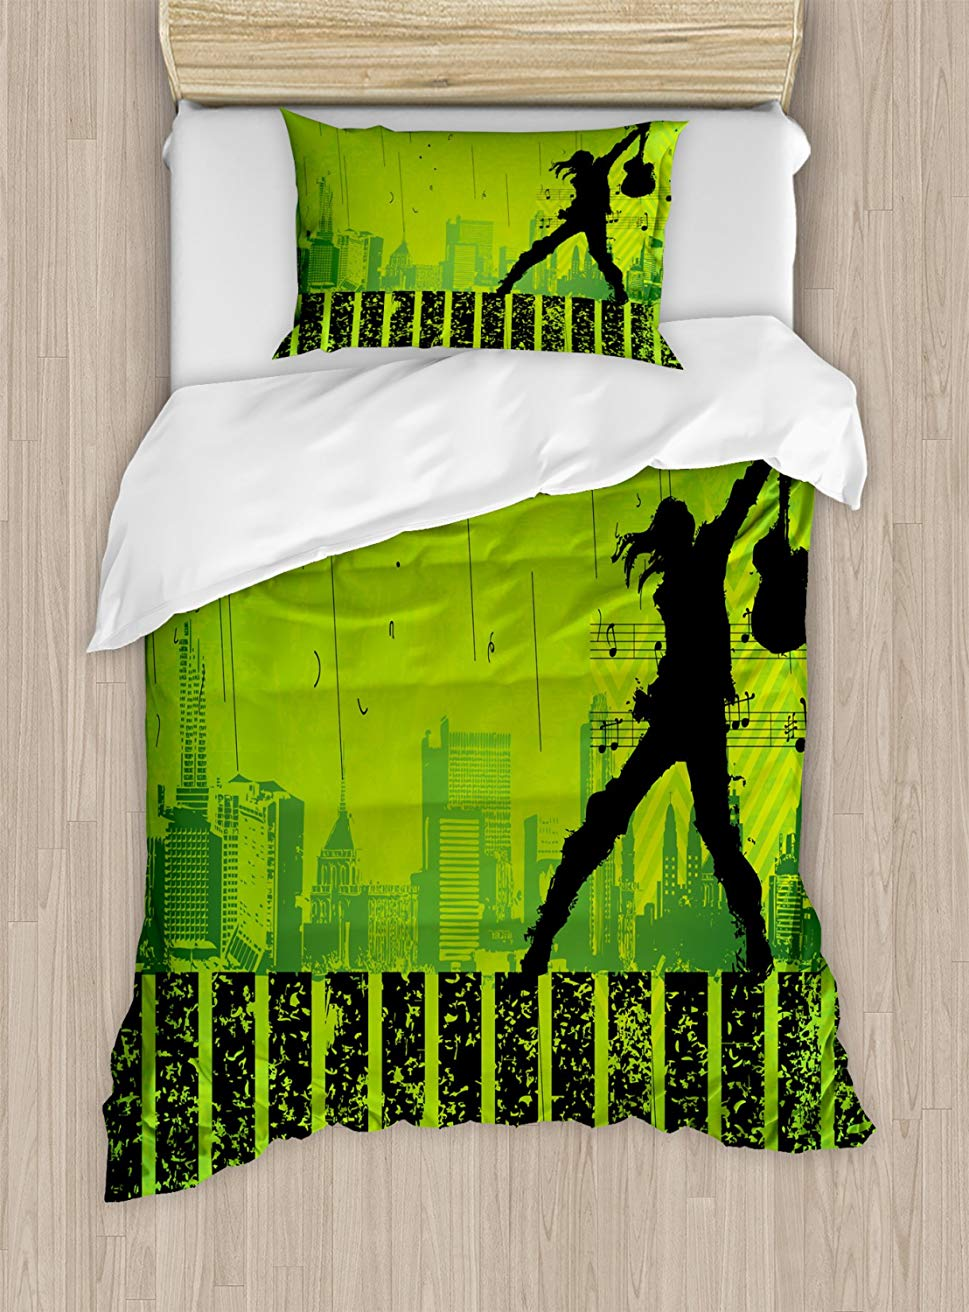 Popstar Party Duvet Cover Set Twin Size Music In The City Theme Singer  Electric Guitar on Grunge BackdropPopstar Party Duvet Cover Set Twin Size Music In The City Theme Singer  Electric Guitar on Grunge Backdrop